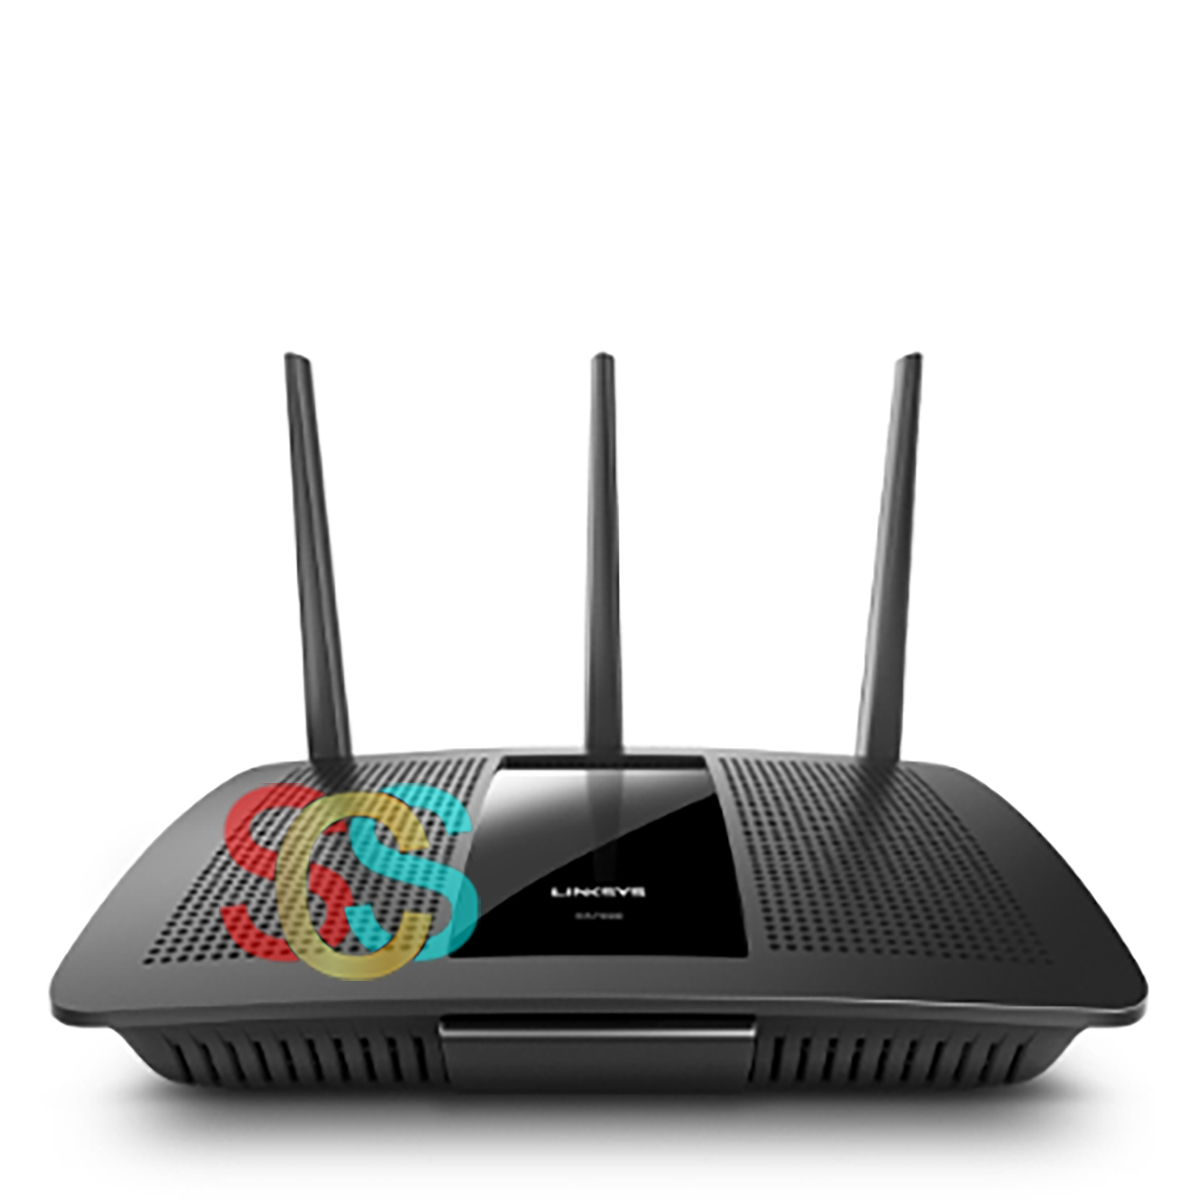 Linksys EA7500 AC1900 Mbps Gigabit Dual-Band Wi-Fi Router